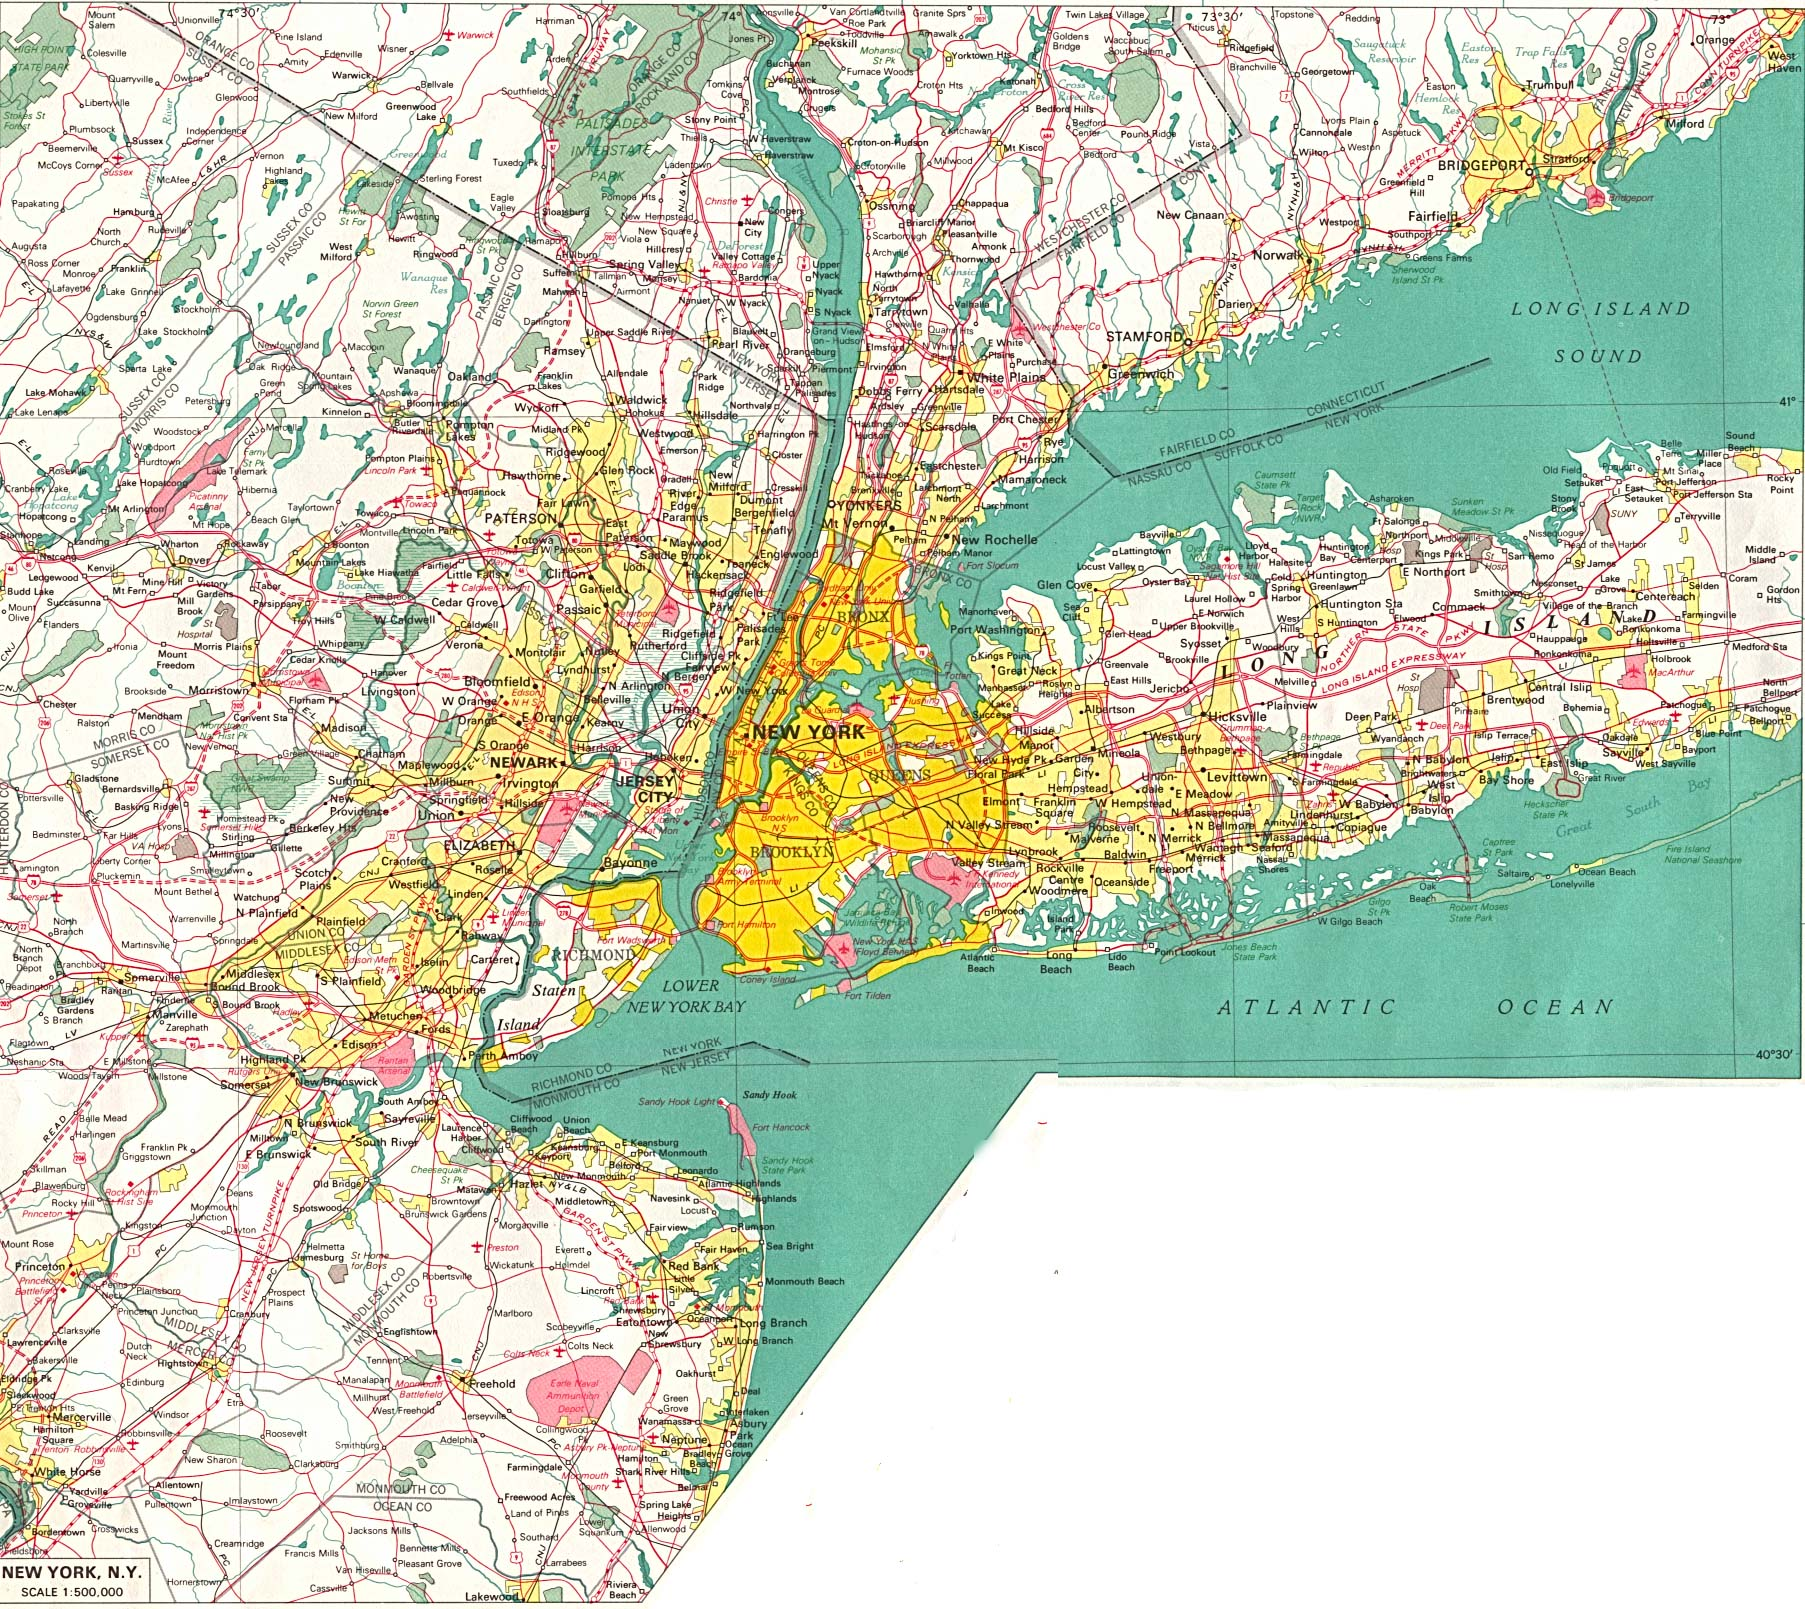 Map of new york city and surrounding areas